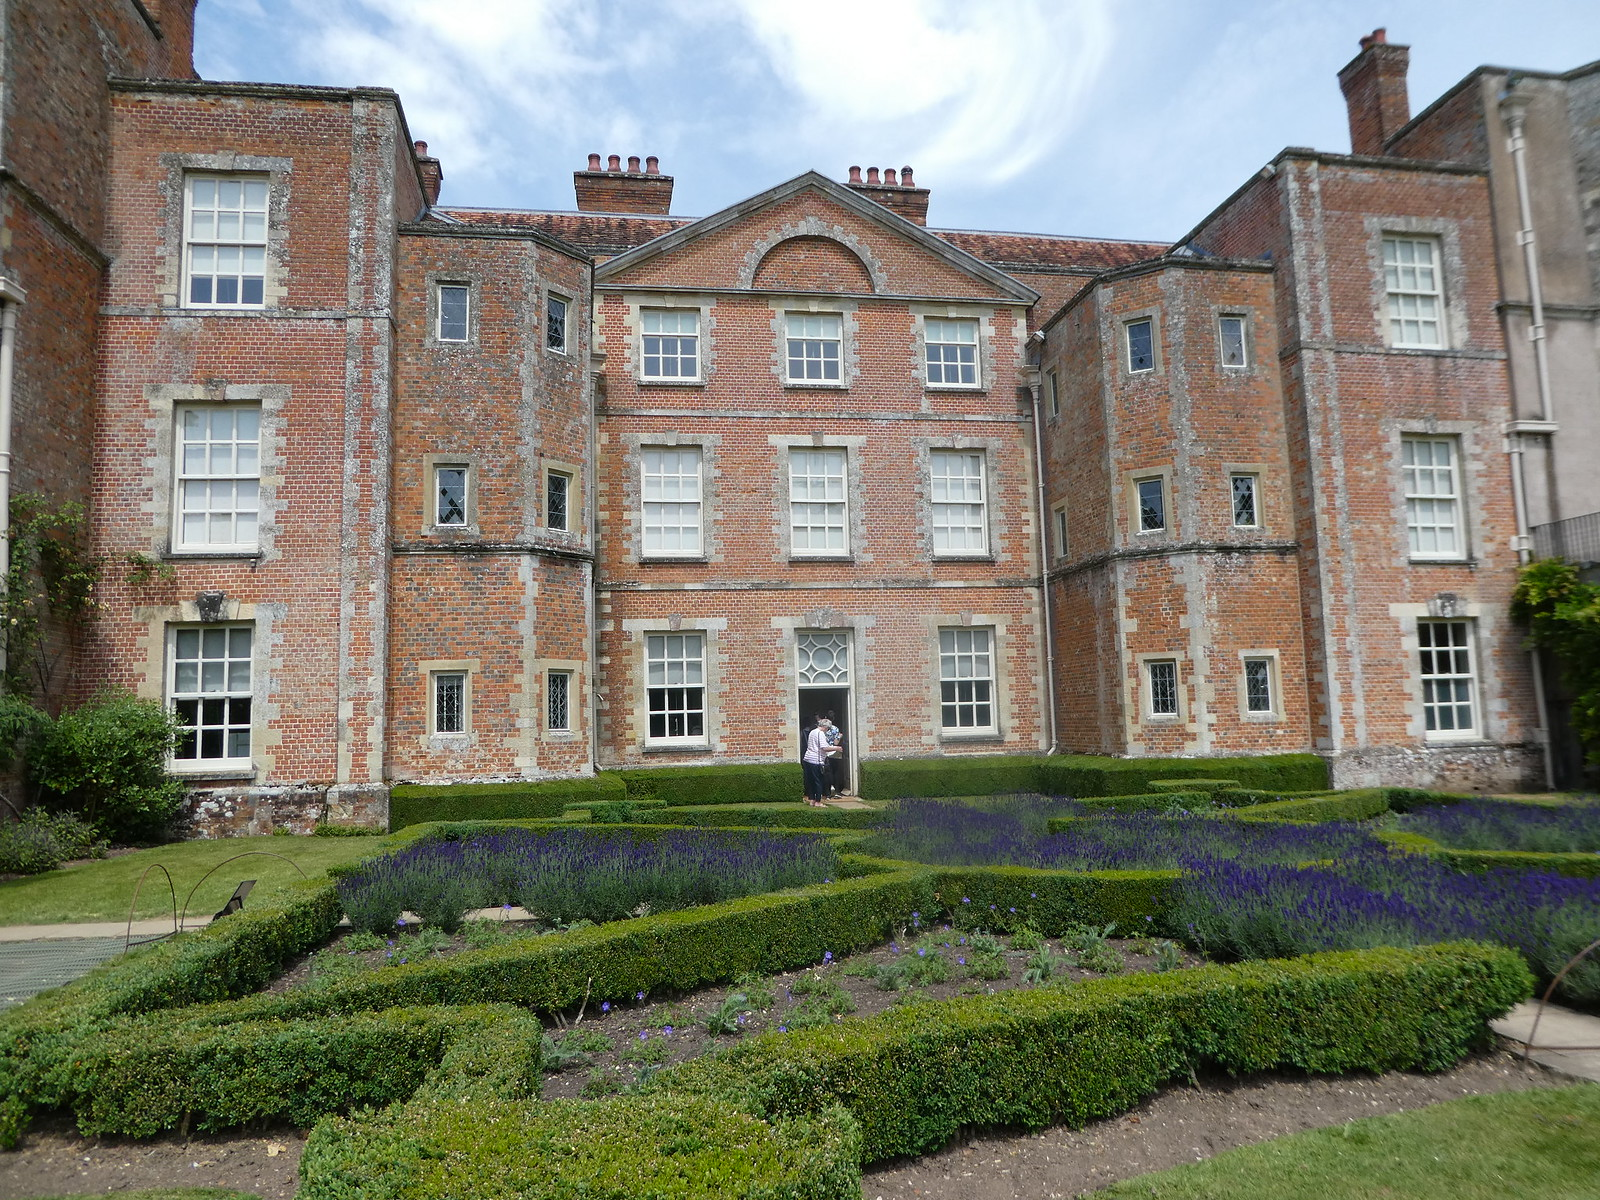 Mottisfont House